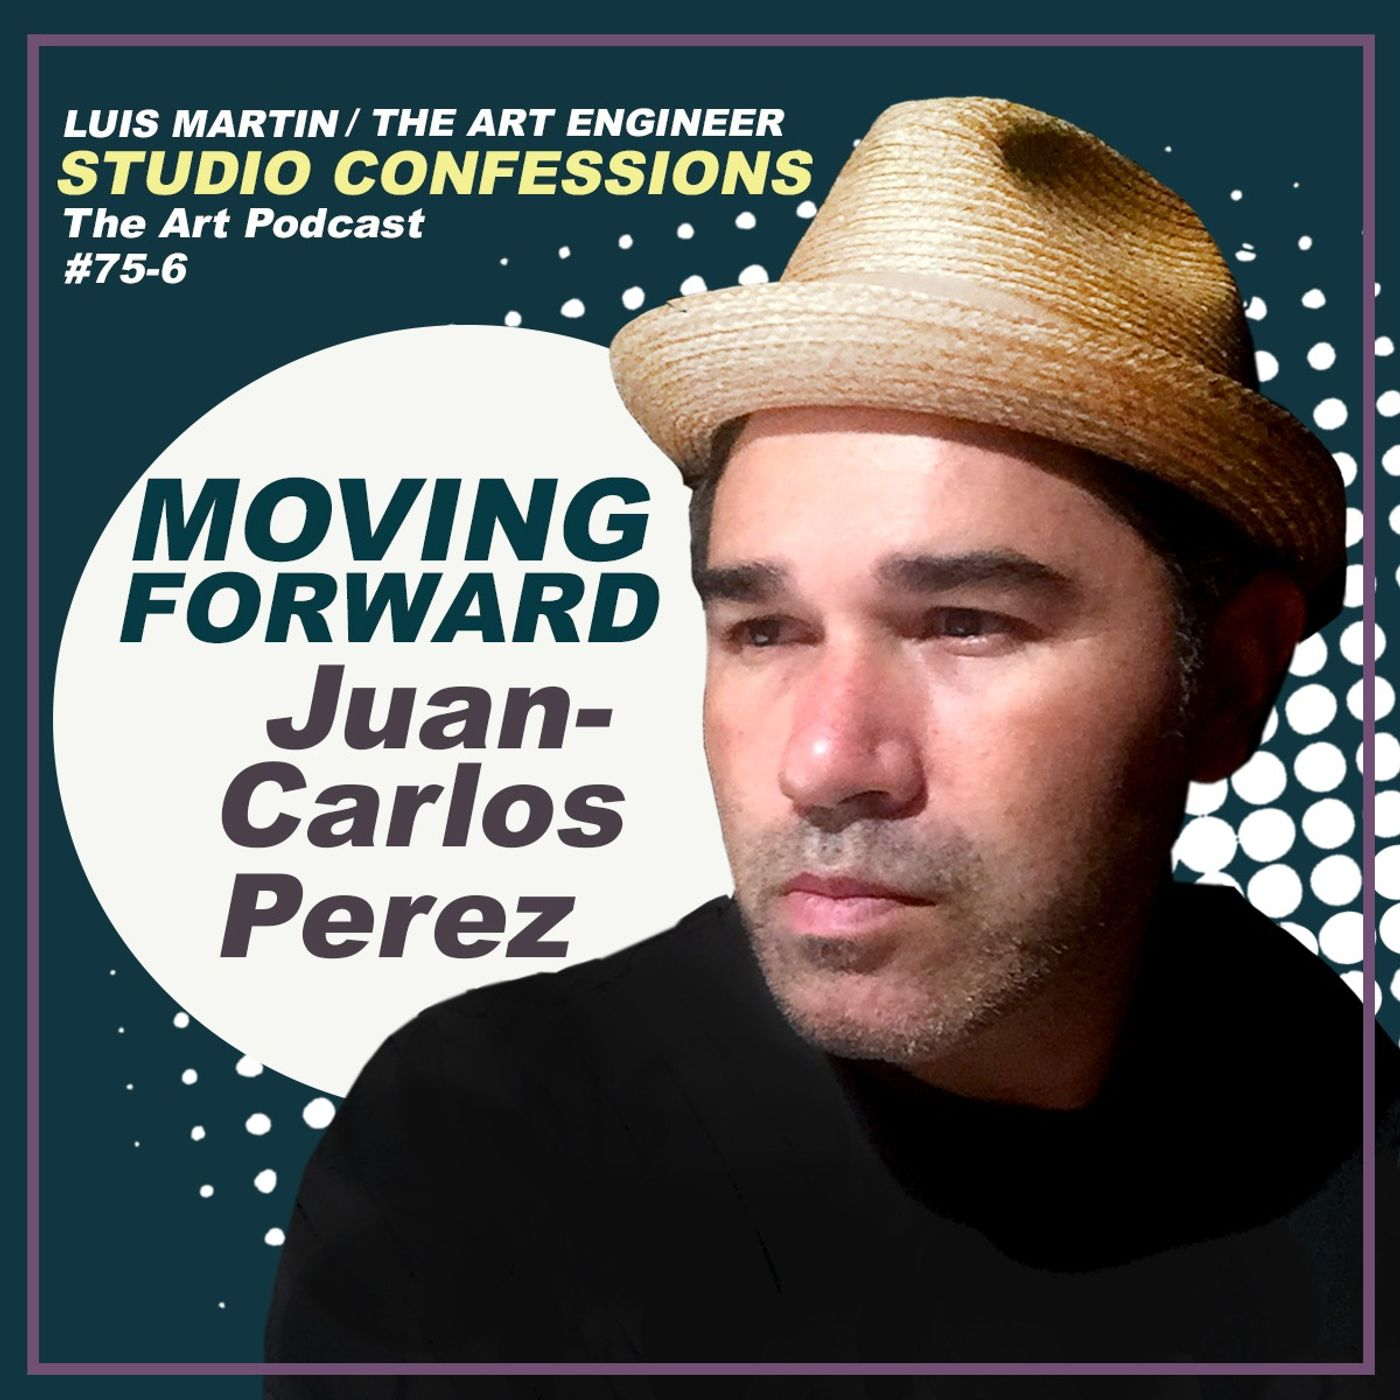 Juan-Carlos Perez: Moving Forward